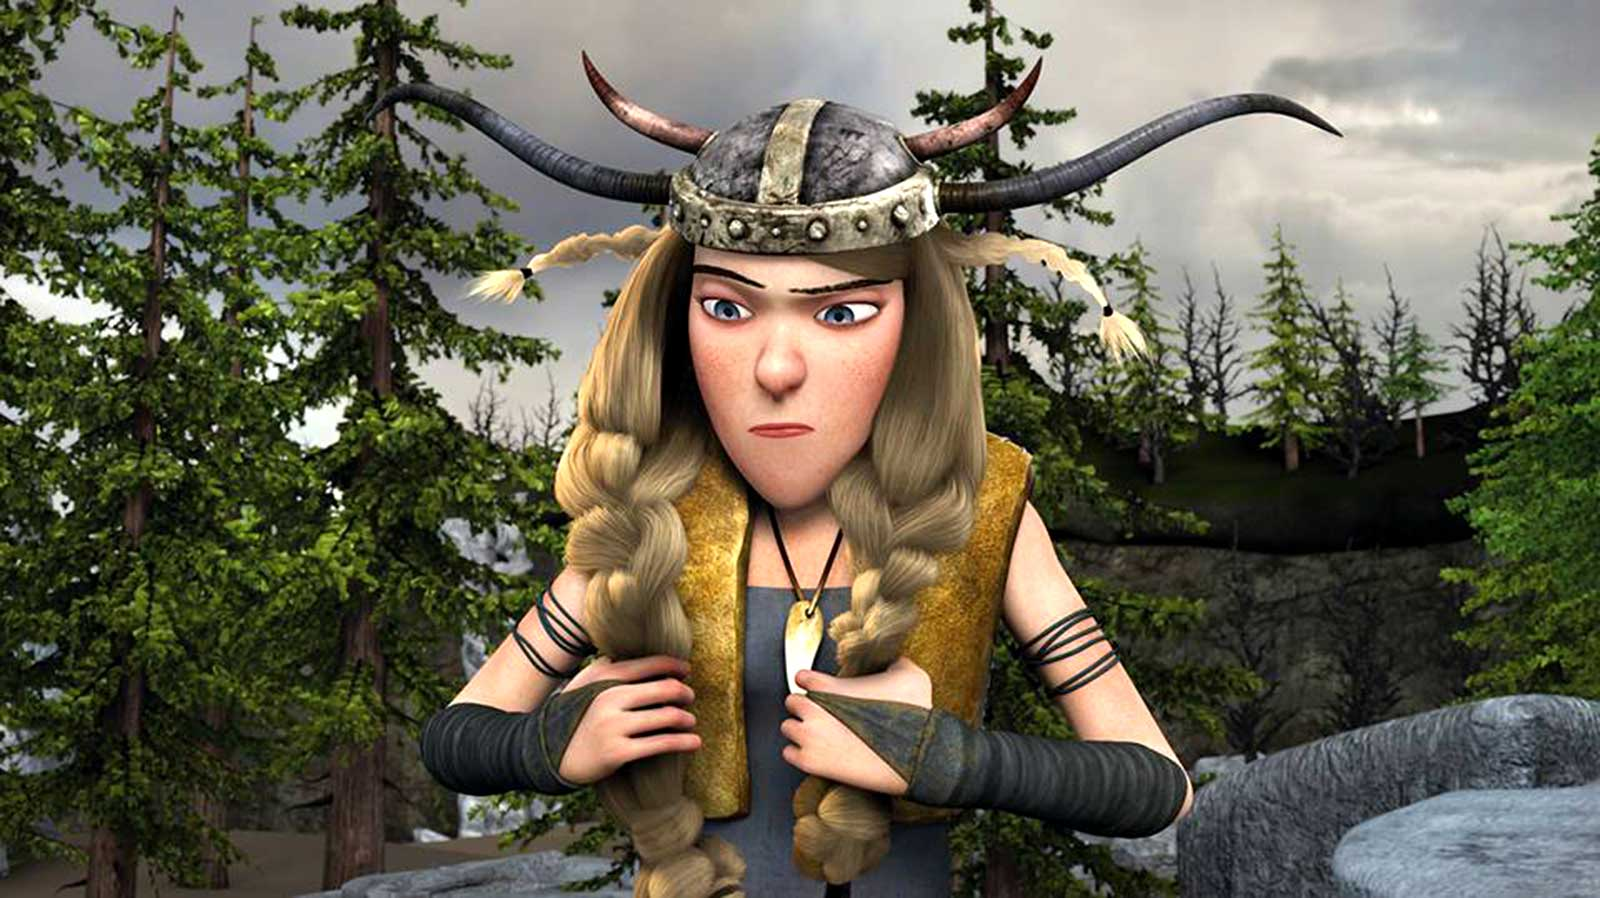 How to train your dragon 3 wallpapers wallpaper cave how to train your dragon 2 characters hd wallpaper background images ccuart Images